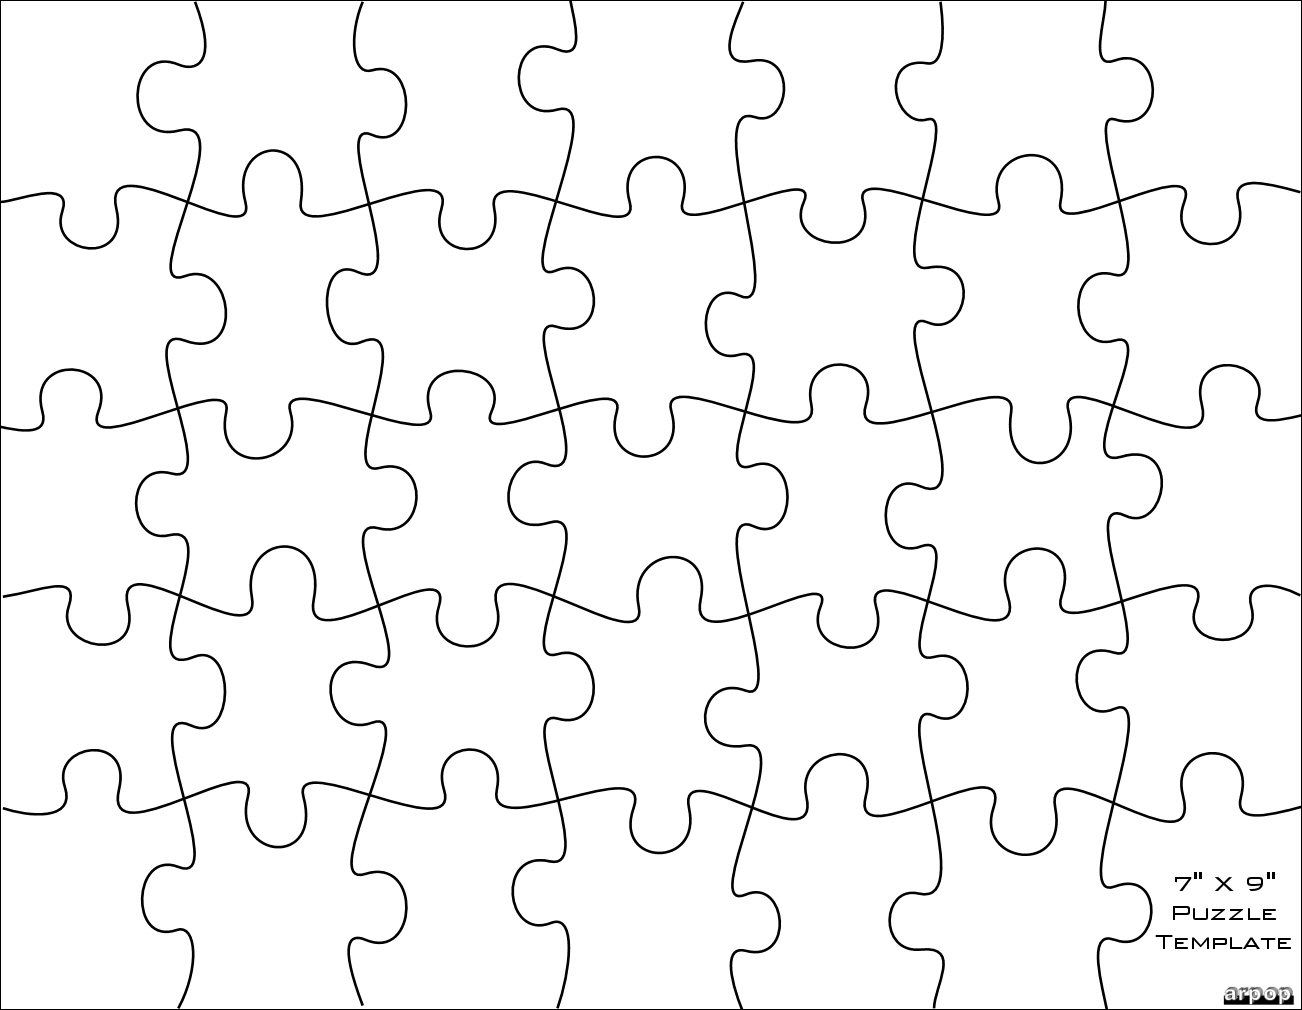 Free Puzzle Template, Download Free Clip Art, Free Clip Art On - Printable 9 Piece Puzzle